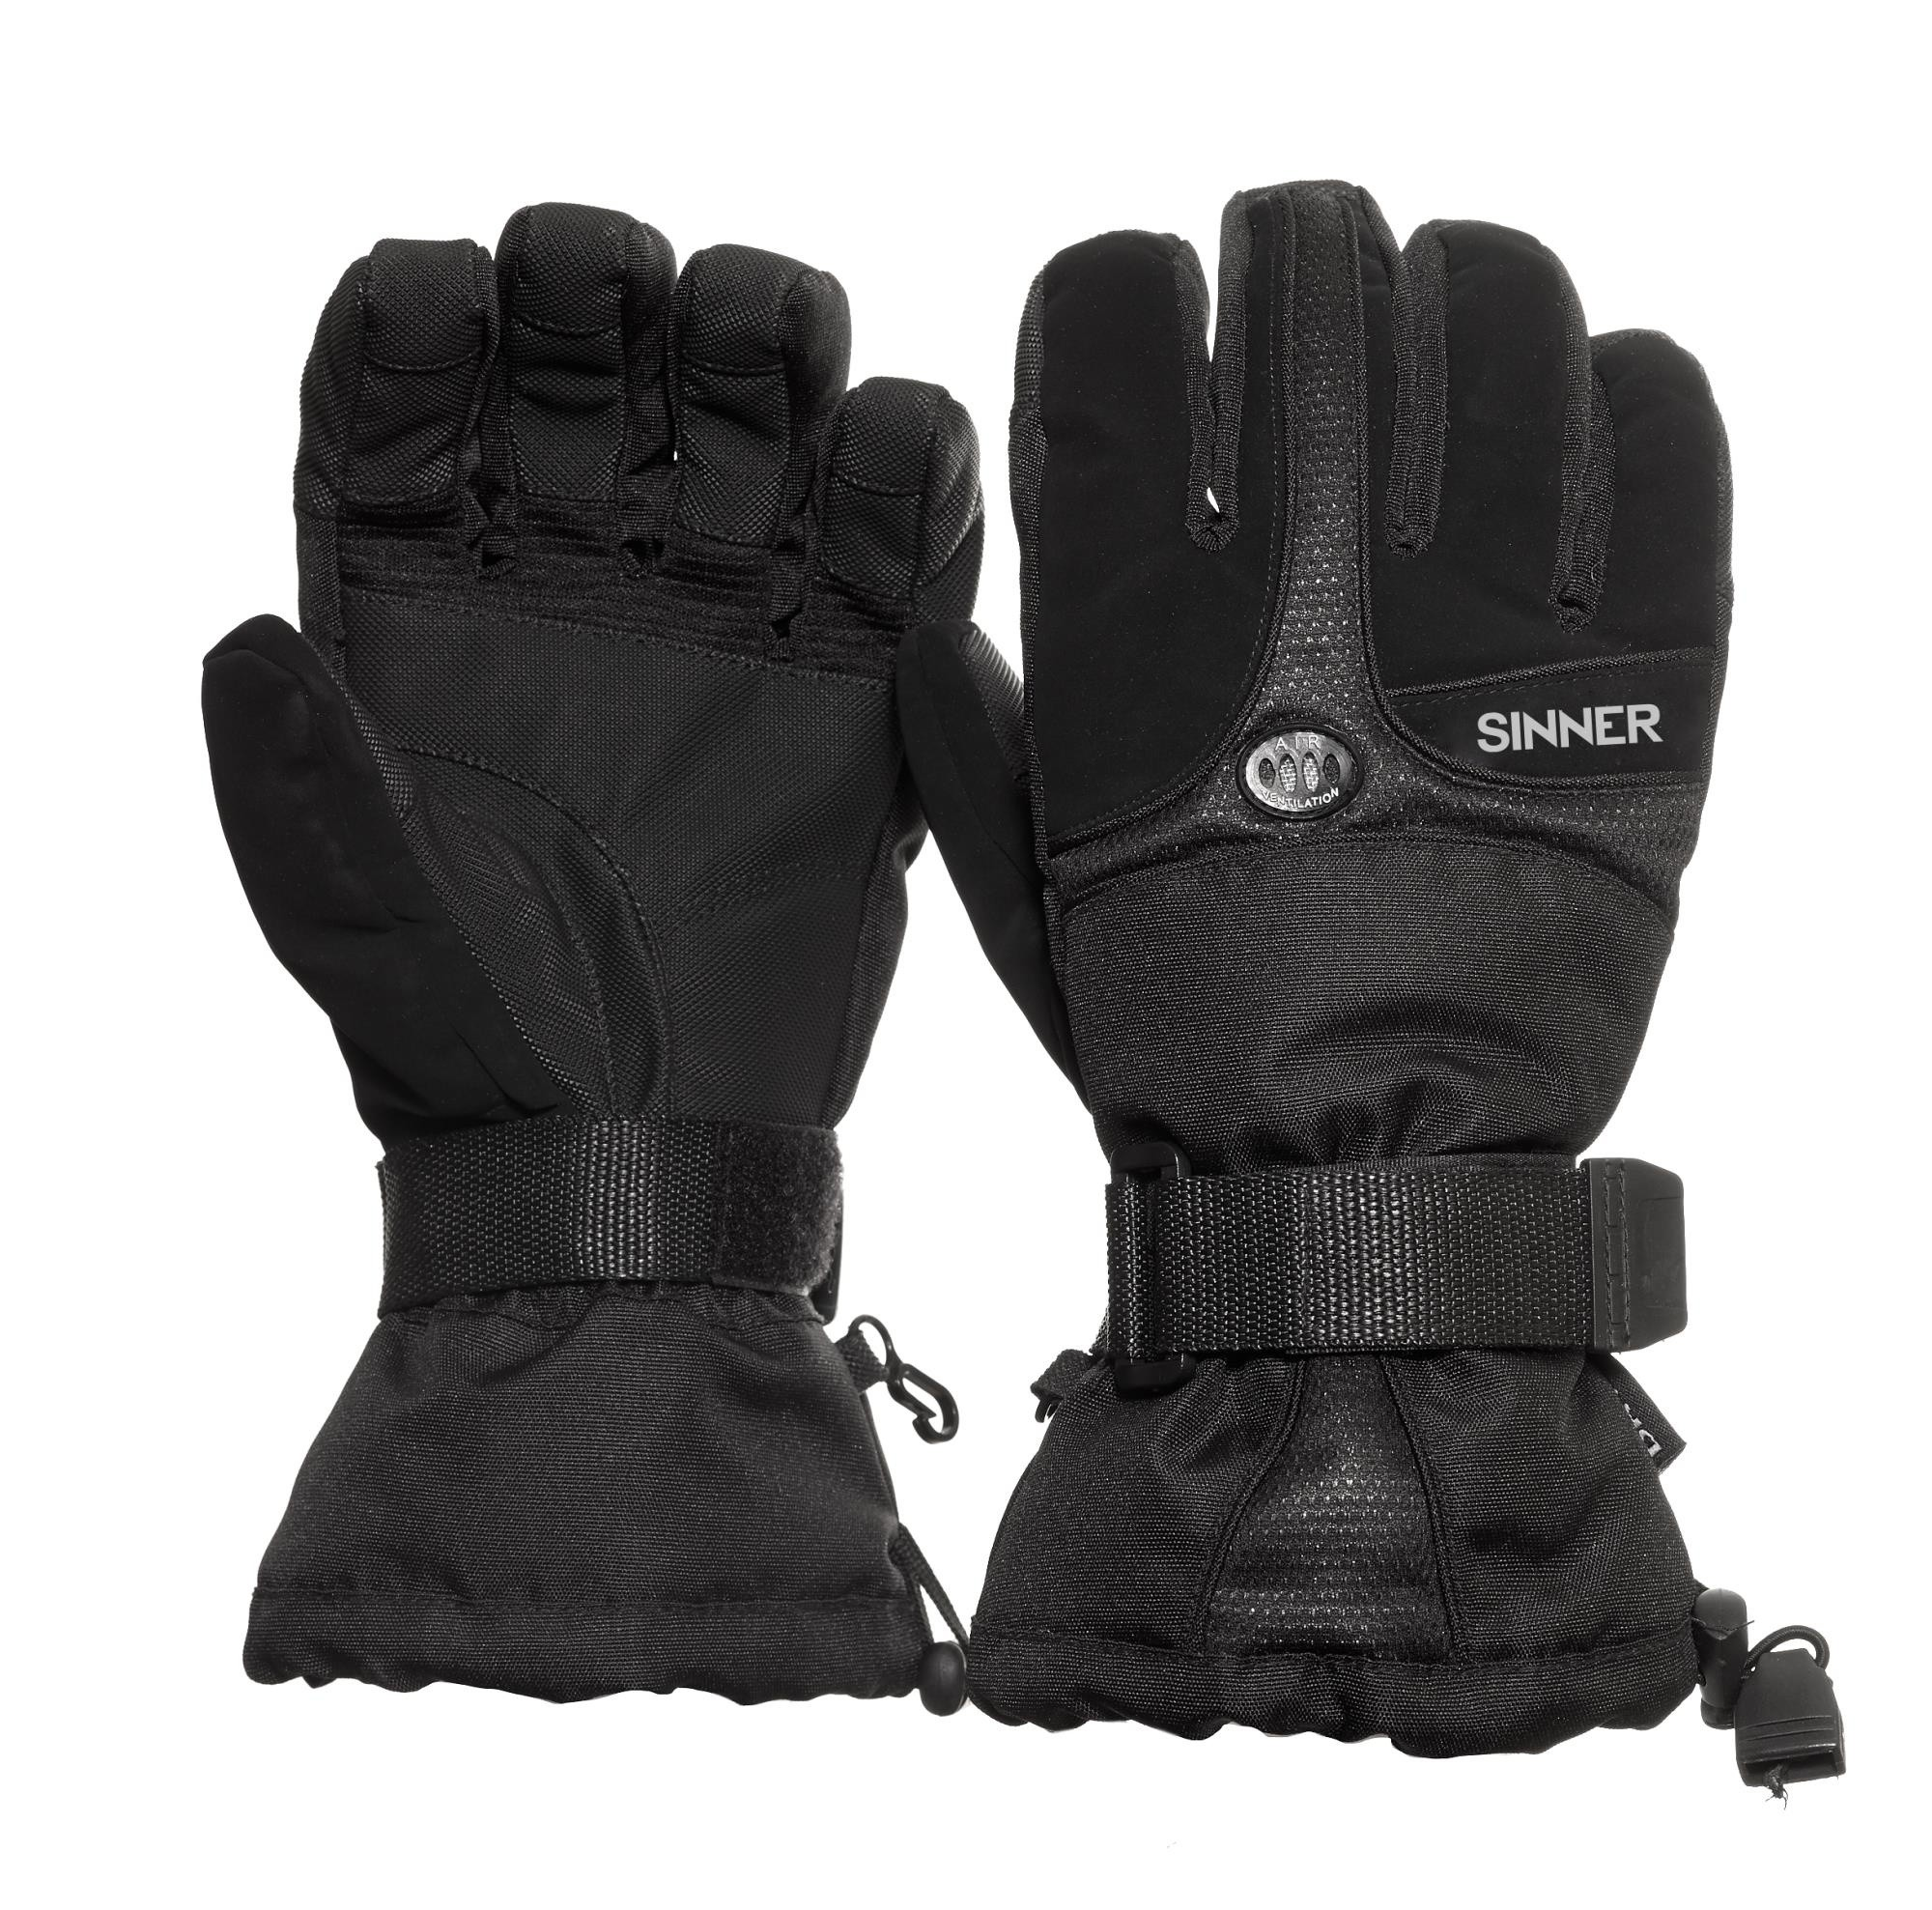 Sinner wintersport glove Everest